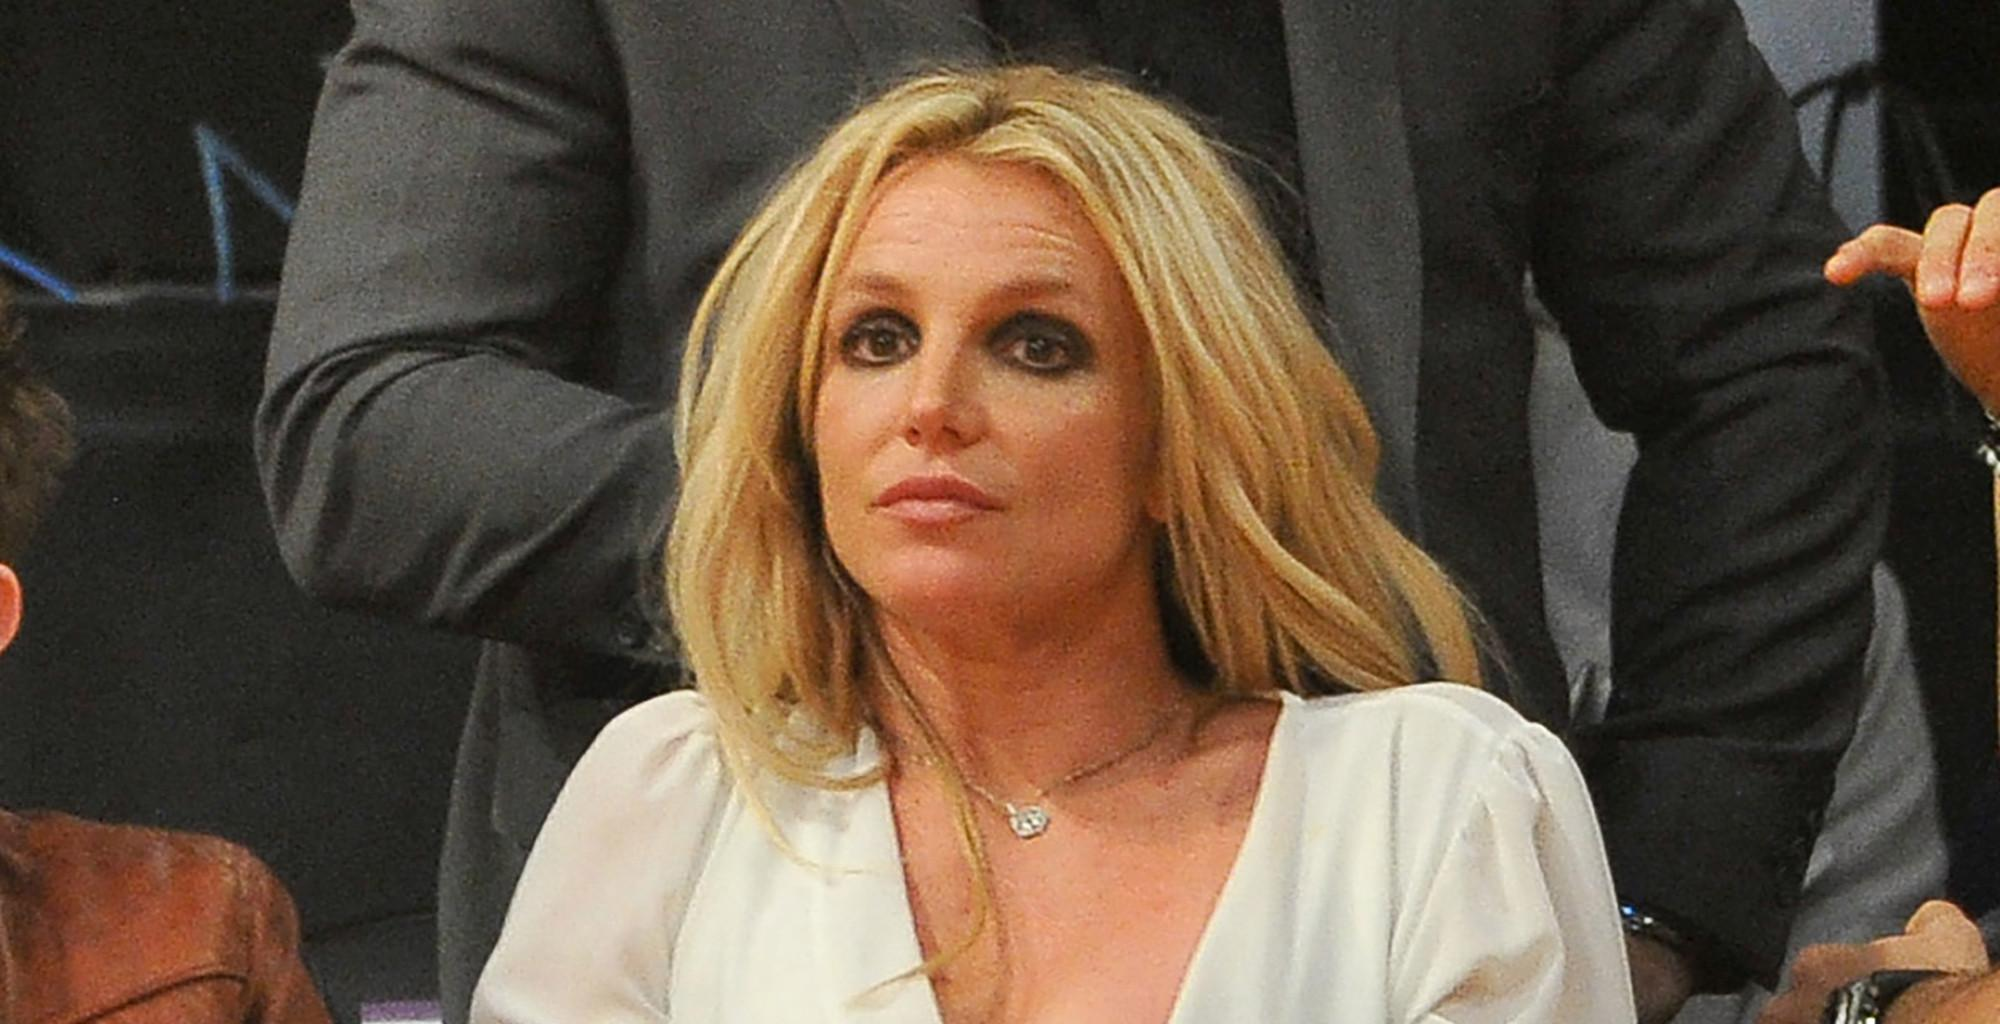 Britney Spears Not Forced To Go To Mental Health Facility By Her Dad But Checked Herself In - Here's Why!